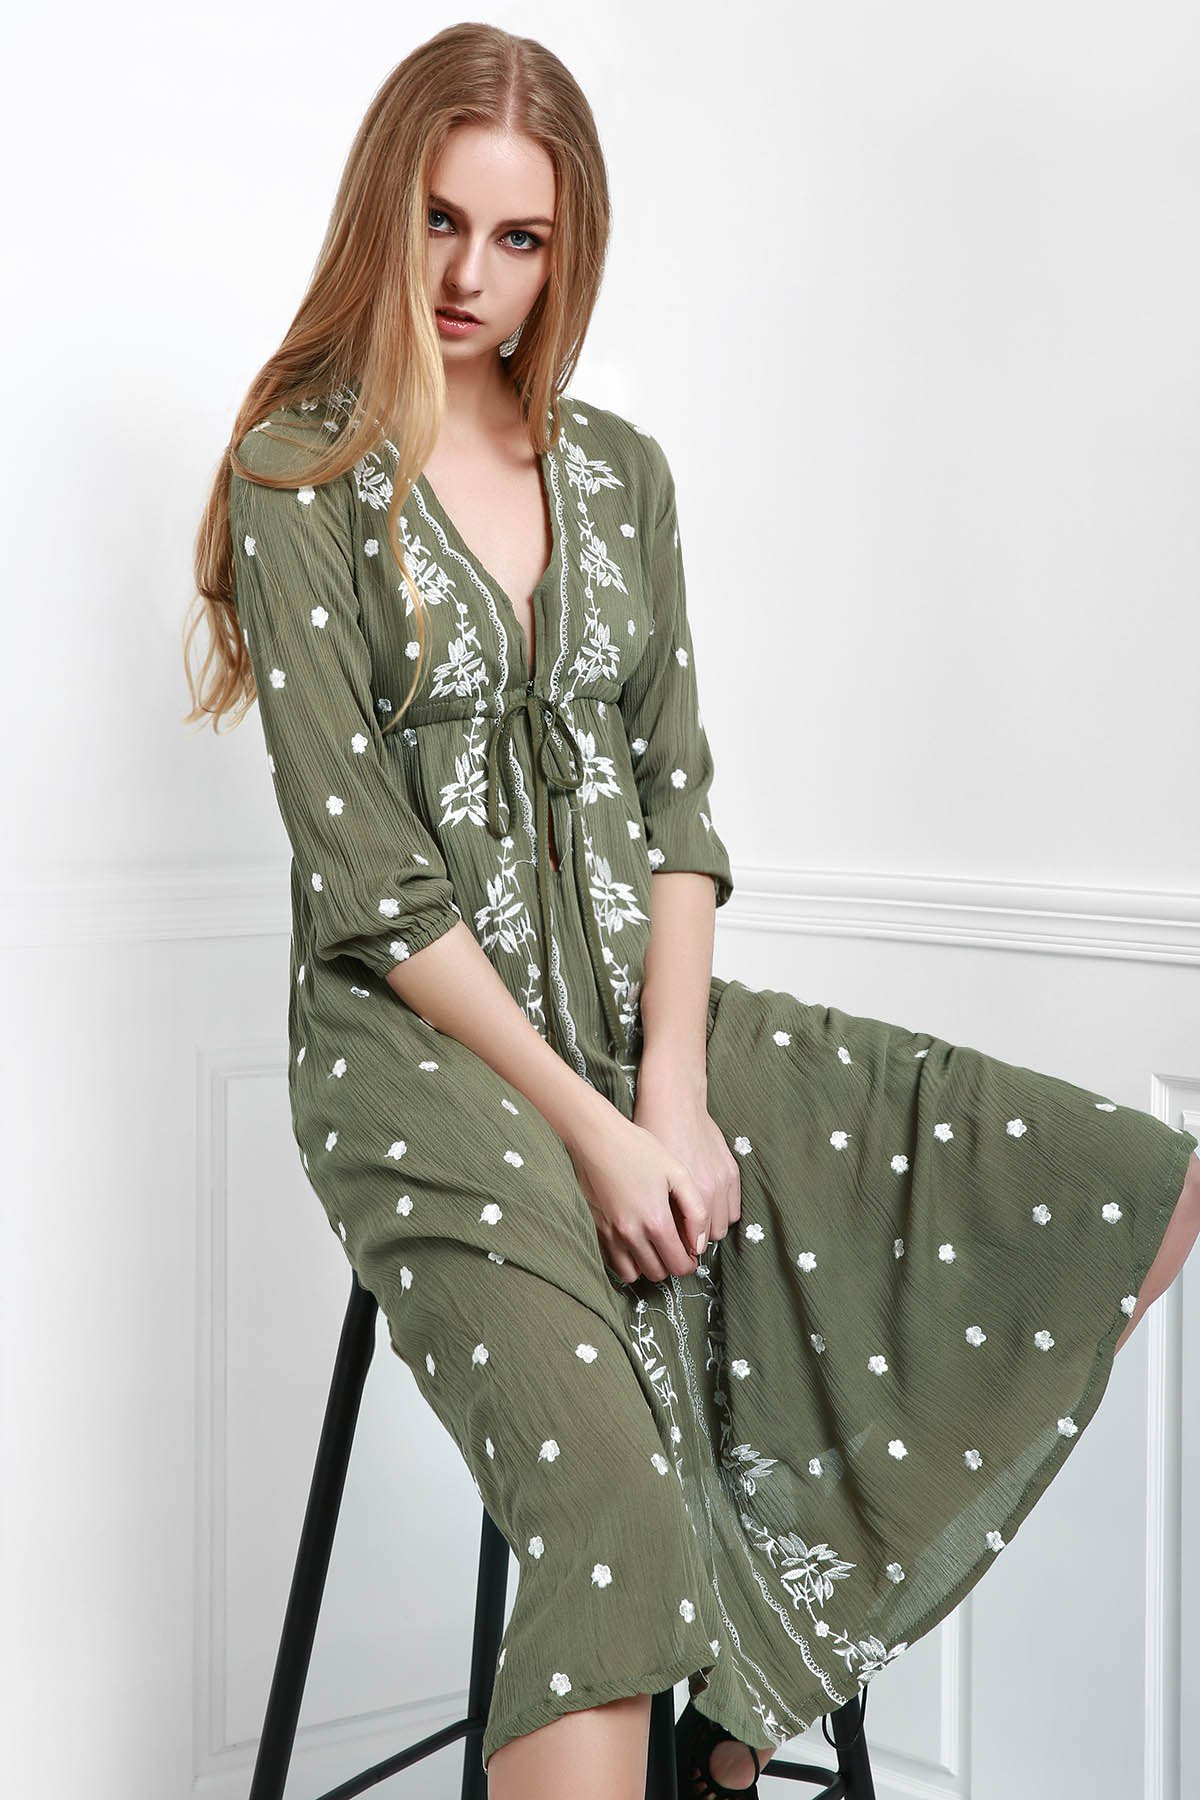 V-Neck Embroidered Drawstring Dress - ARMY GREEN S